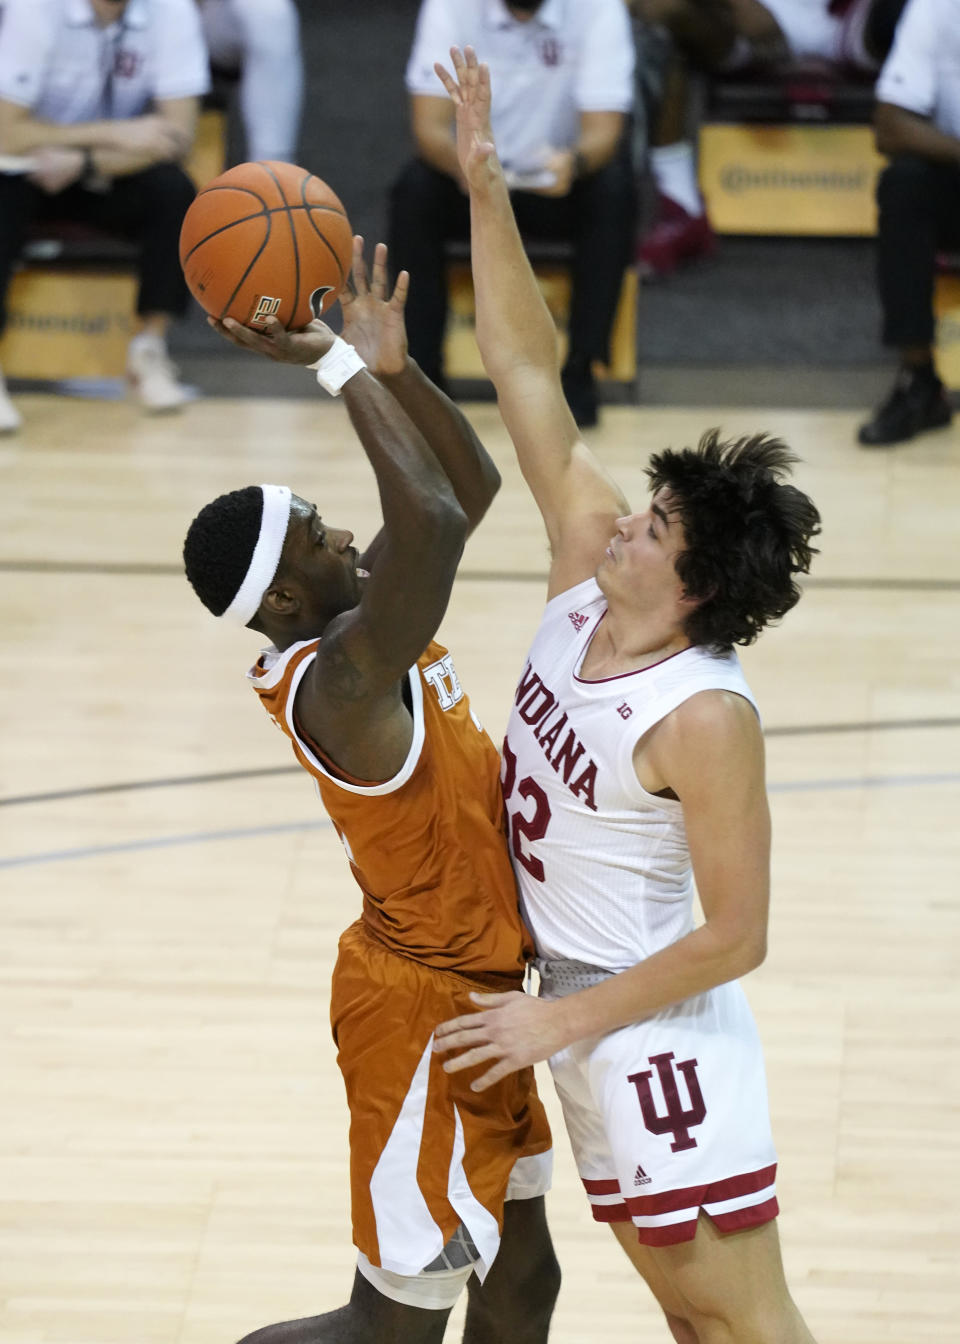 Texas guard Courtney Ramey (3) drives to the basket against Indiana guard Trey Galloway (32) in the first half of a semifinal NCAA college basketball game in the Maui Invitational tournament, Tuesday, Dec. 1, 2020, in Asheville, N.C. (AP Photo/Kathy Kmonicek)